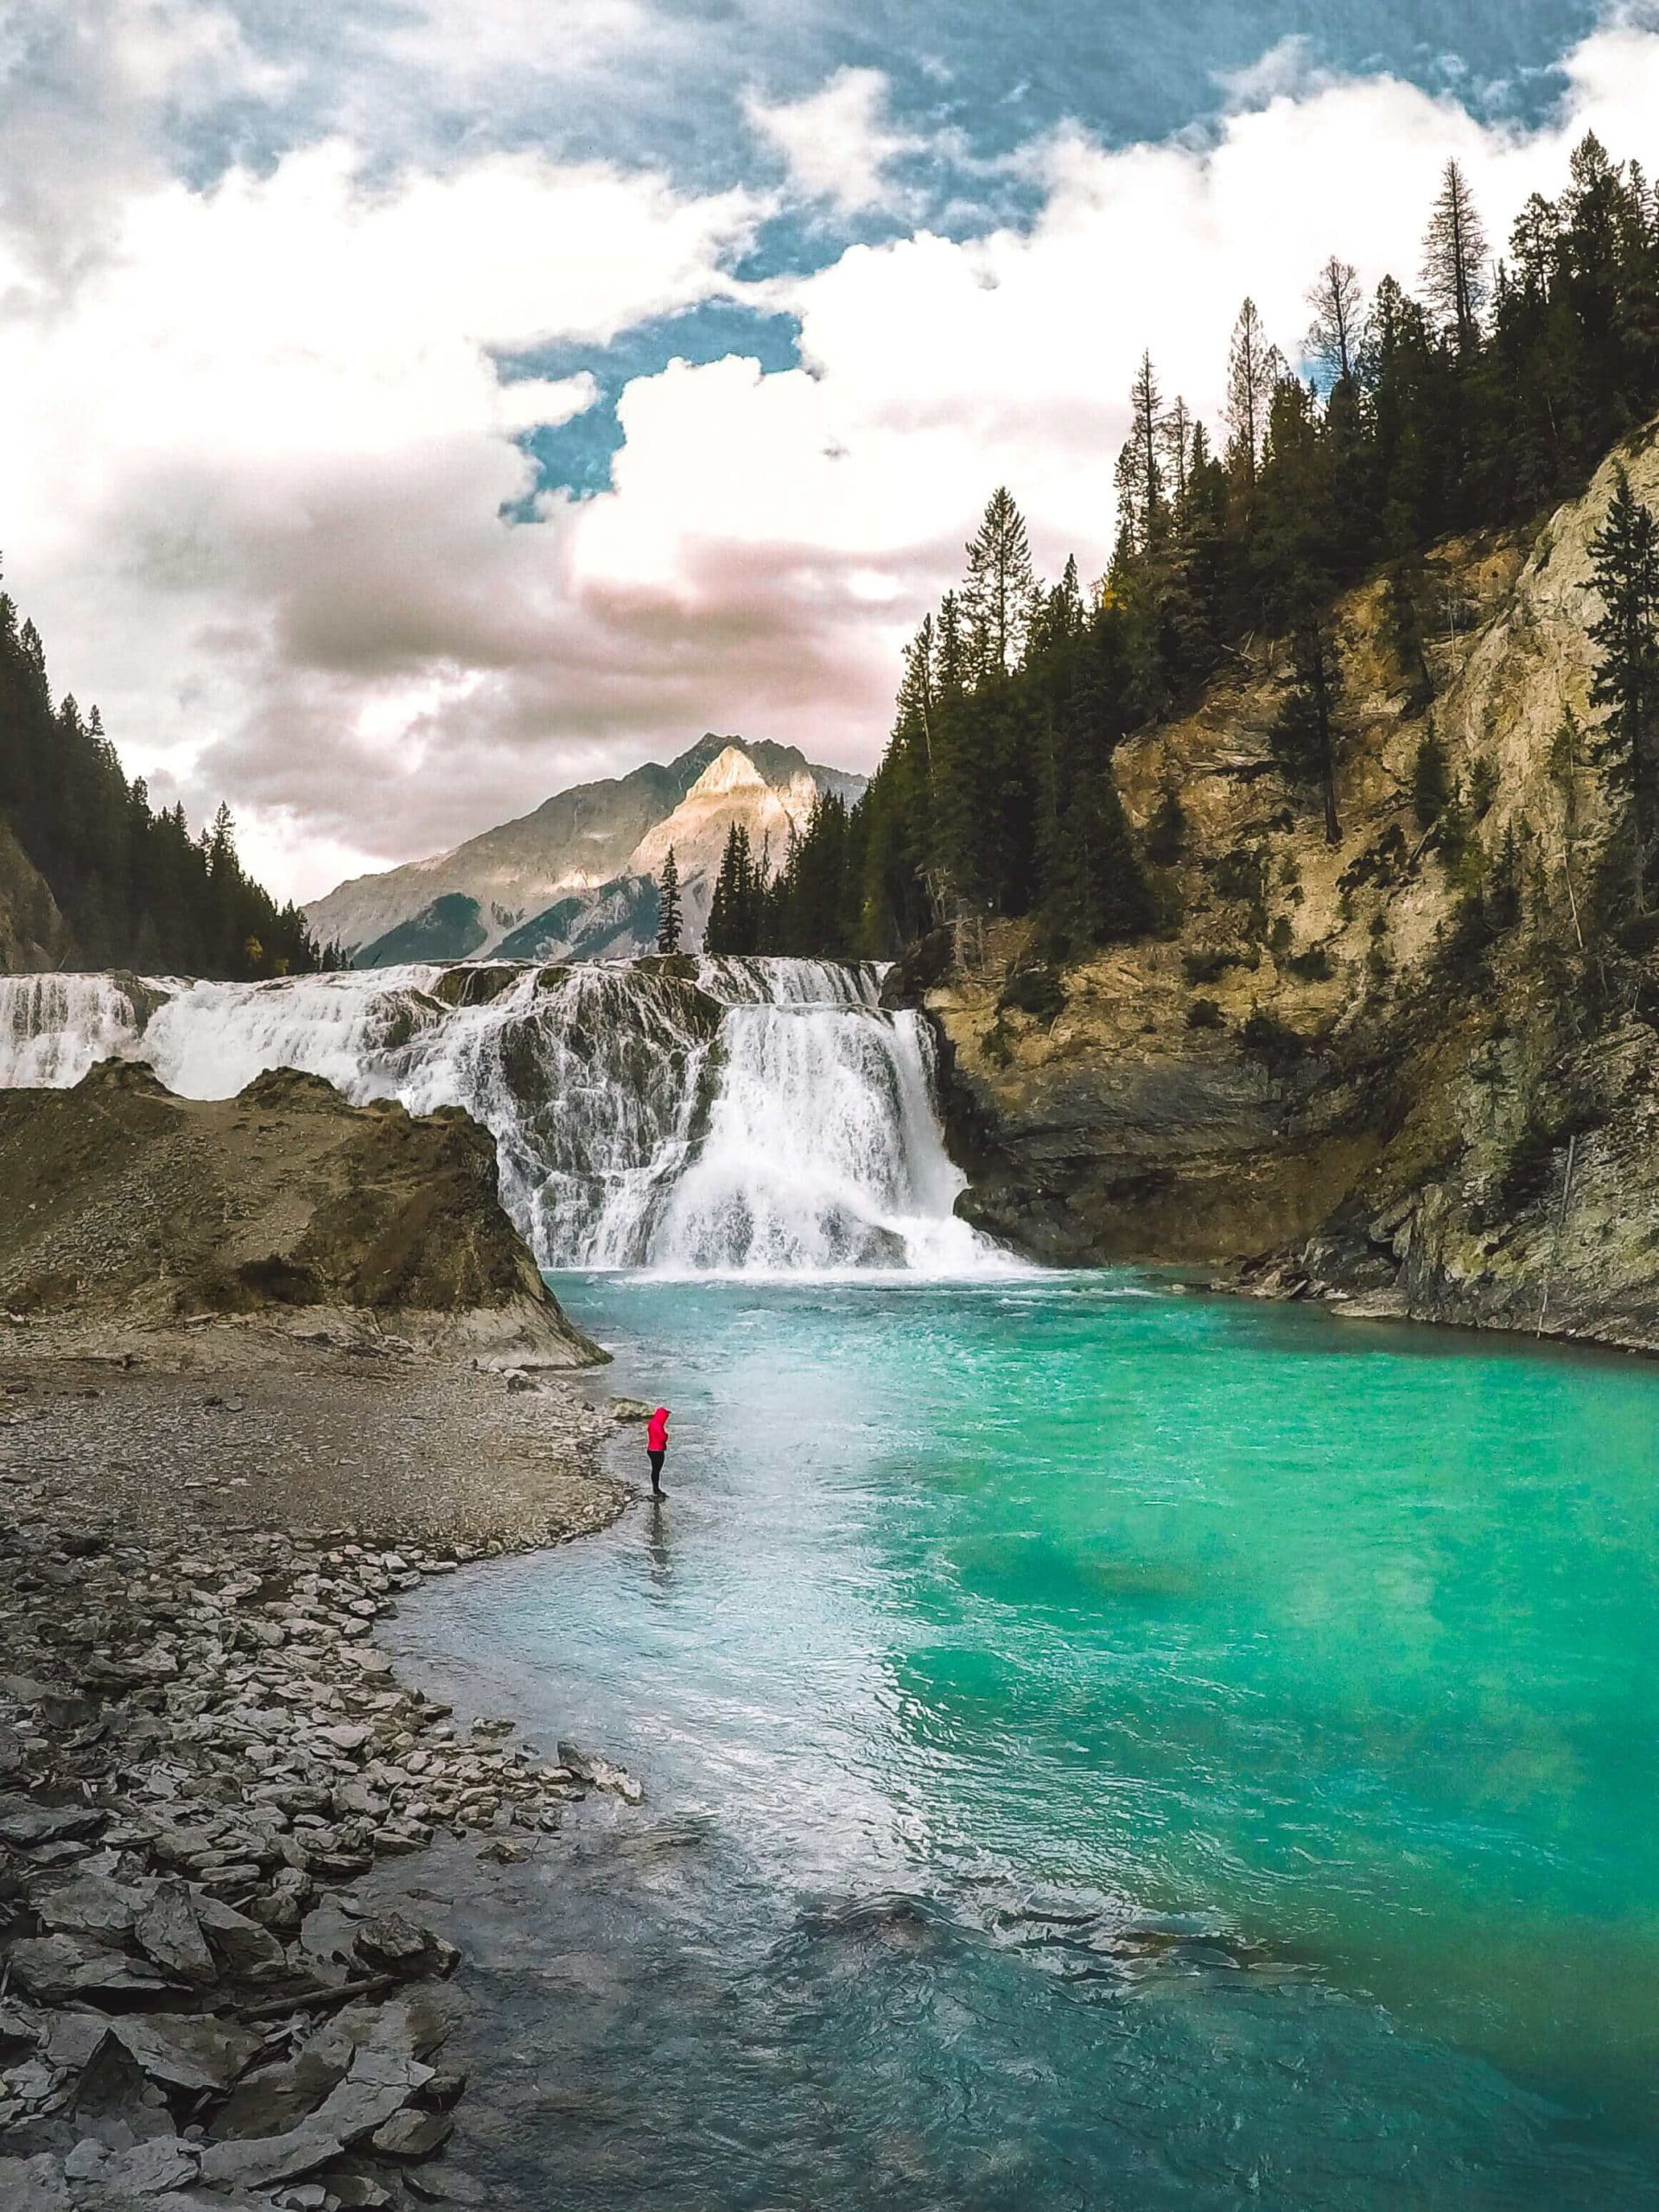 Hiking to the bottom of Wapta Falls, seeing Yoho National Park in one day